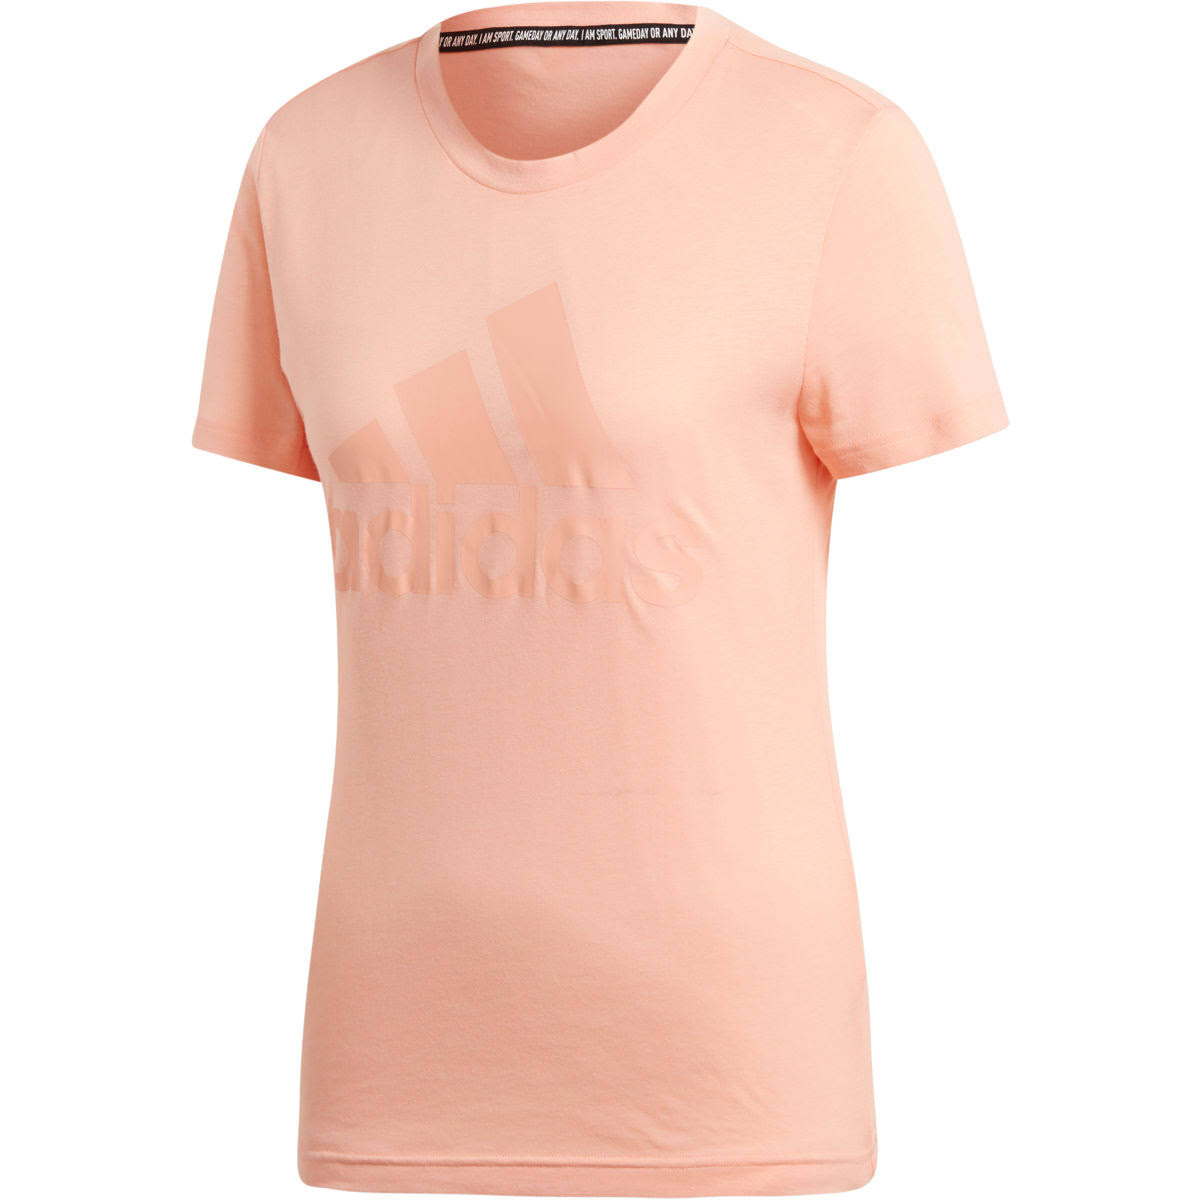 Adidas Must Haves Badge of Sport T-Shirt - Pink - Women